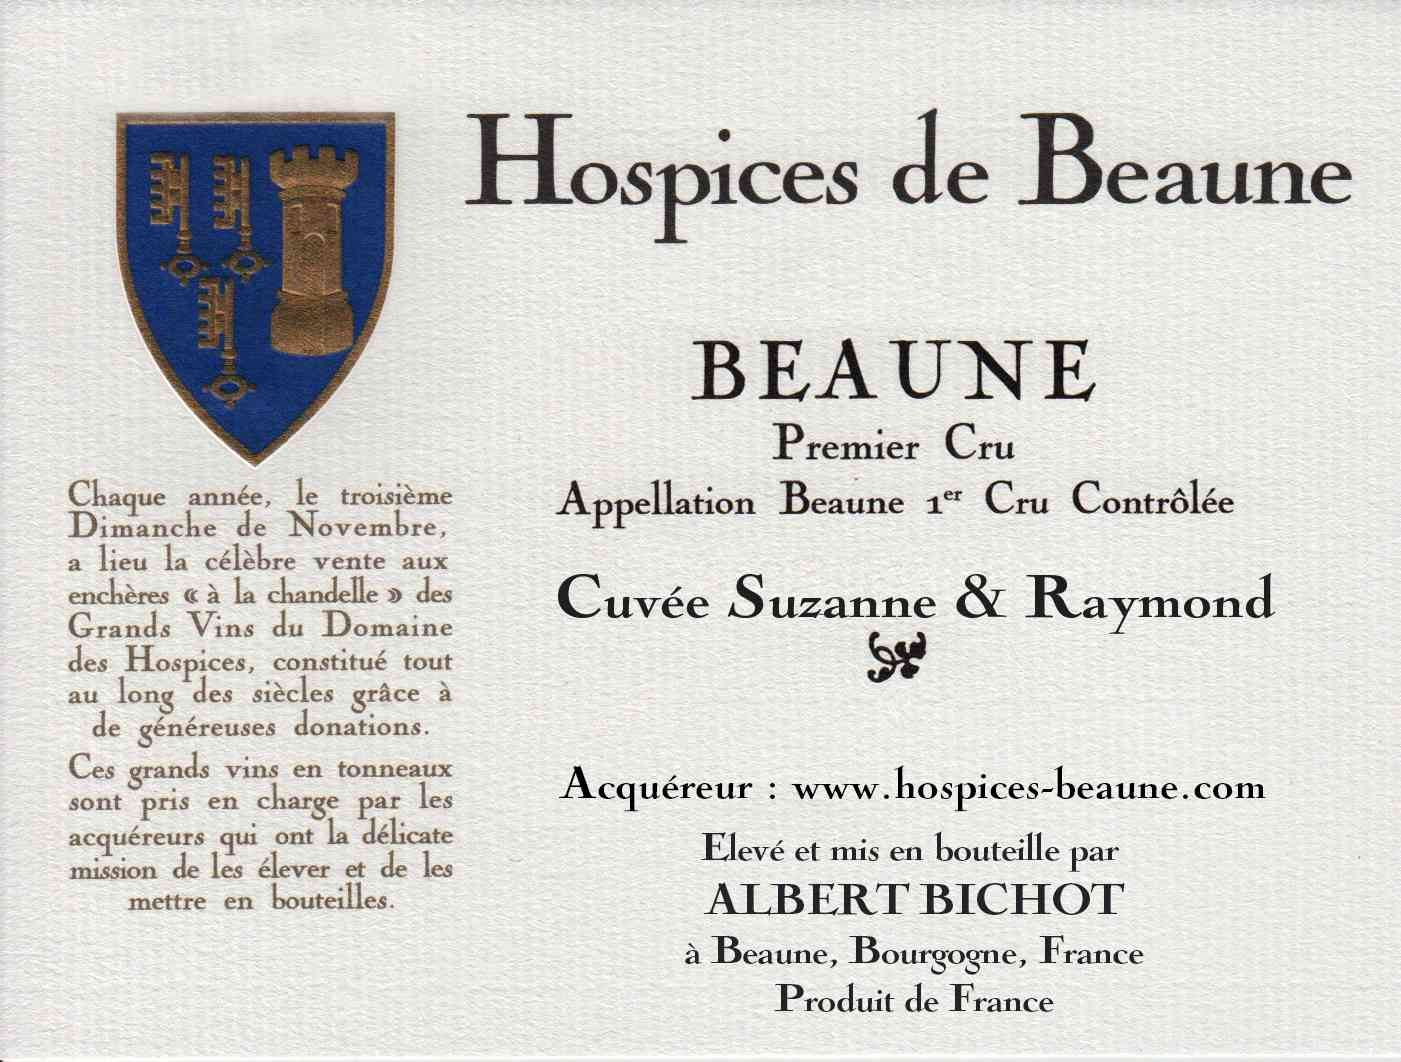 Encheres-auction-HospicesdeBeaune-AlbertBichot-Beaune1erCru-Cuvee-Suzanne-Raymond